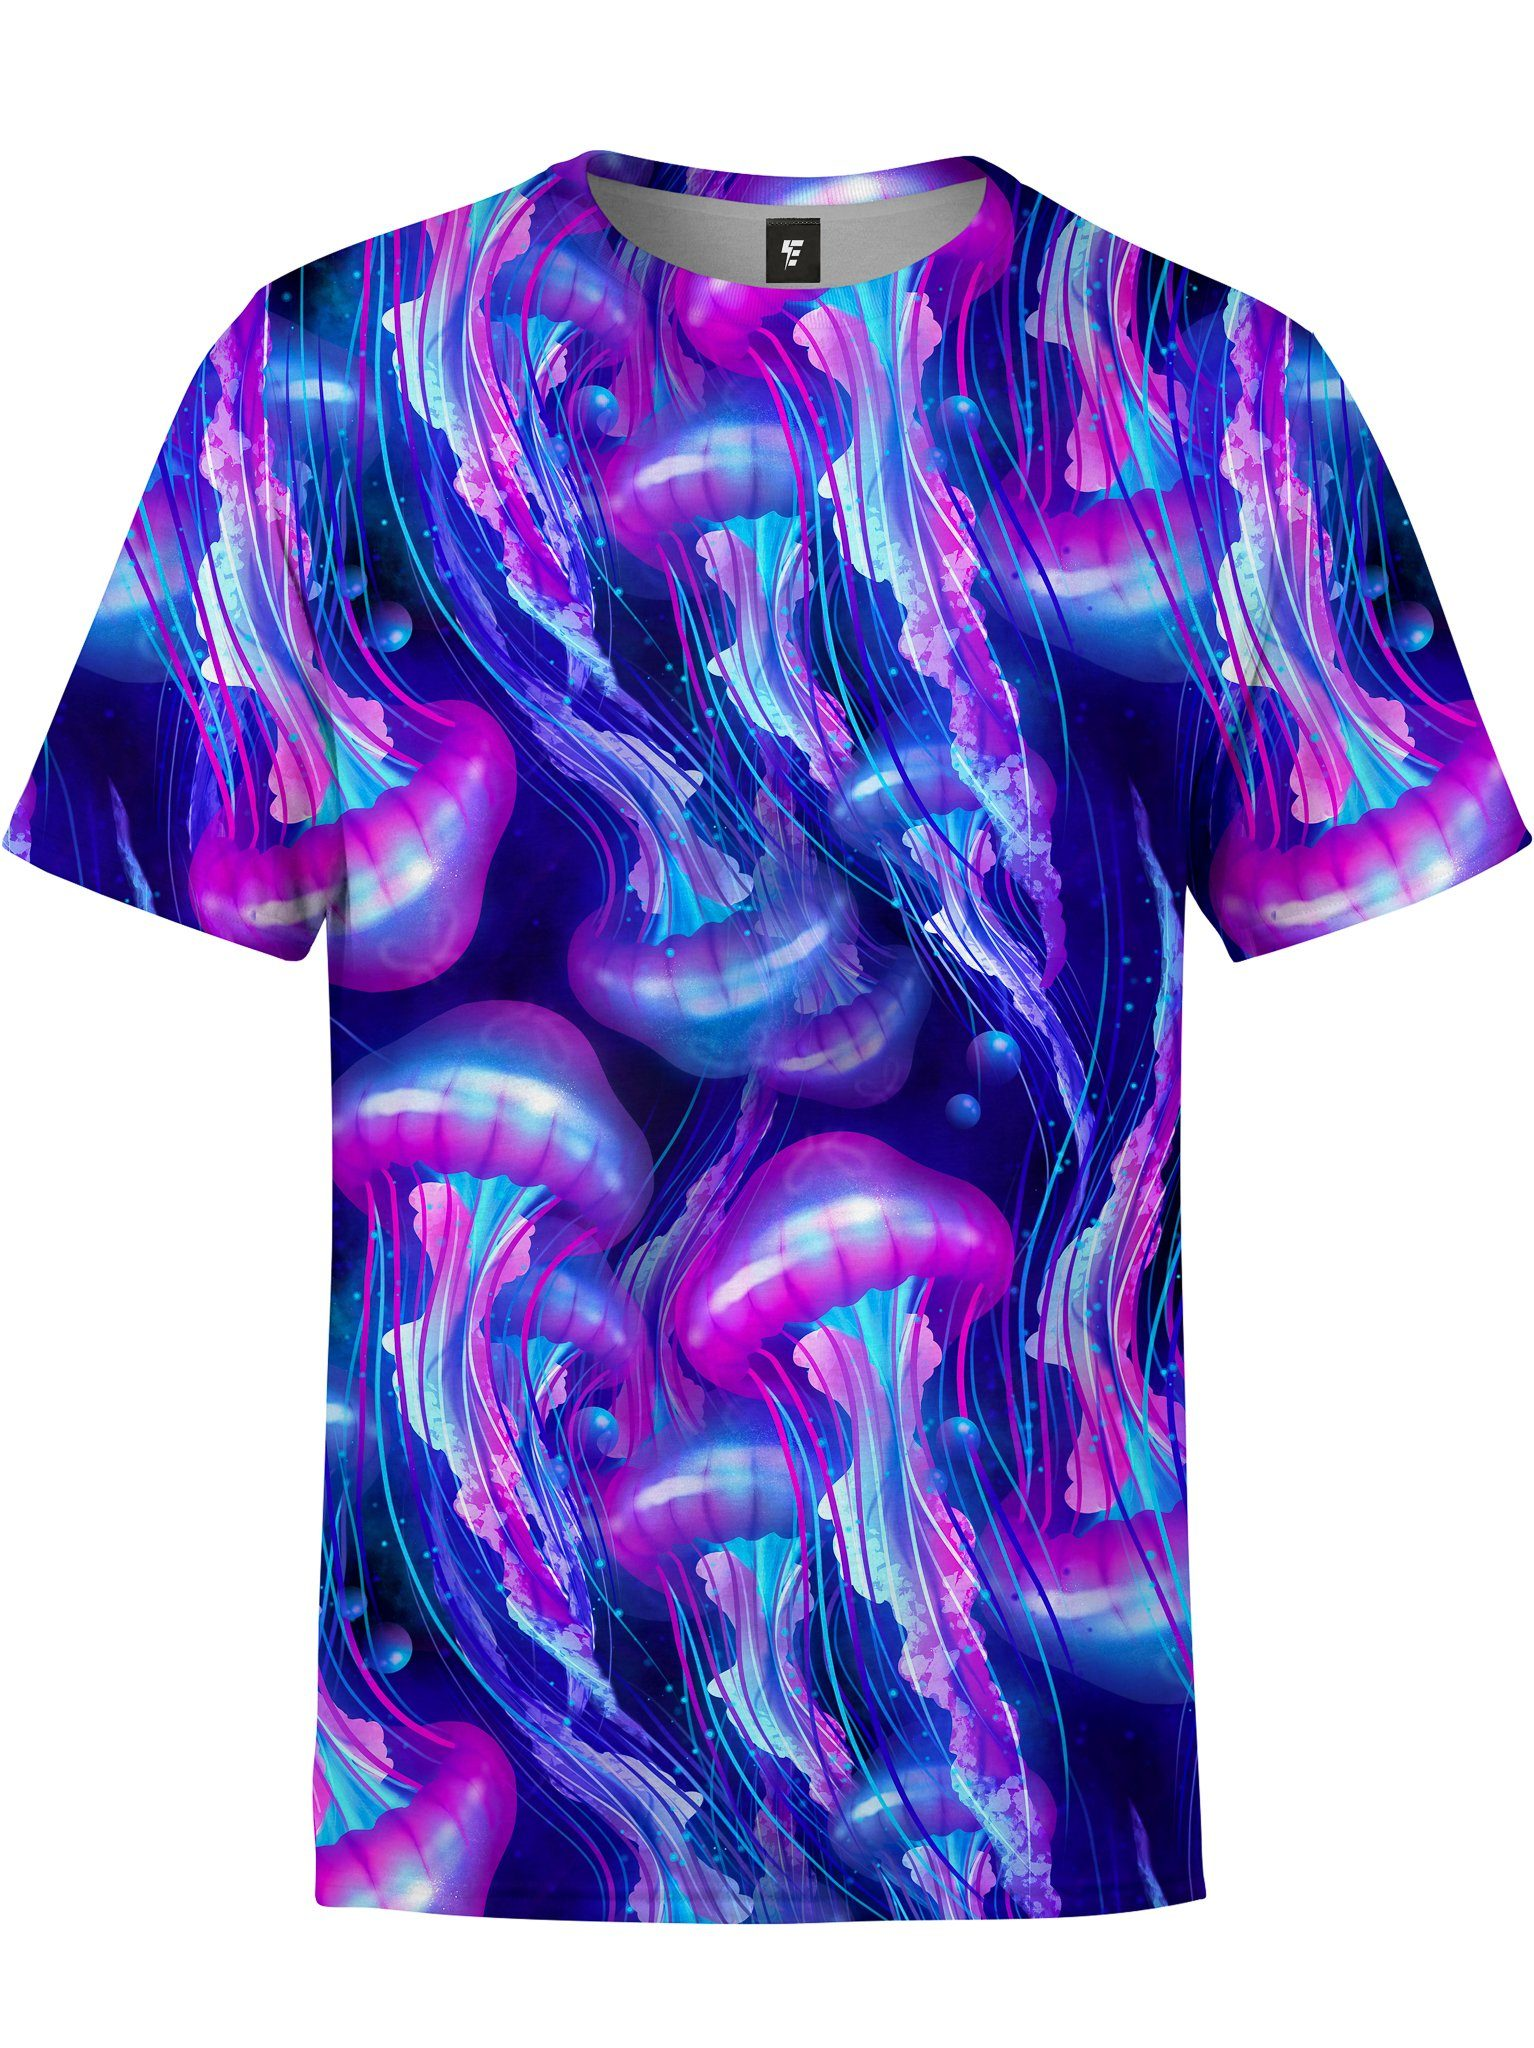 You Jelly? Unisex Crew T-Shirts Electro Threads